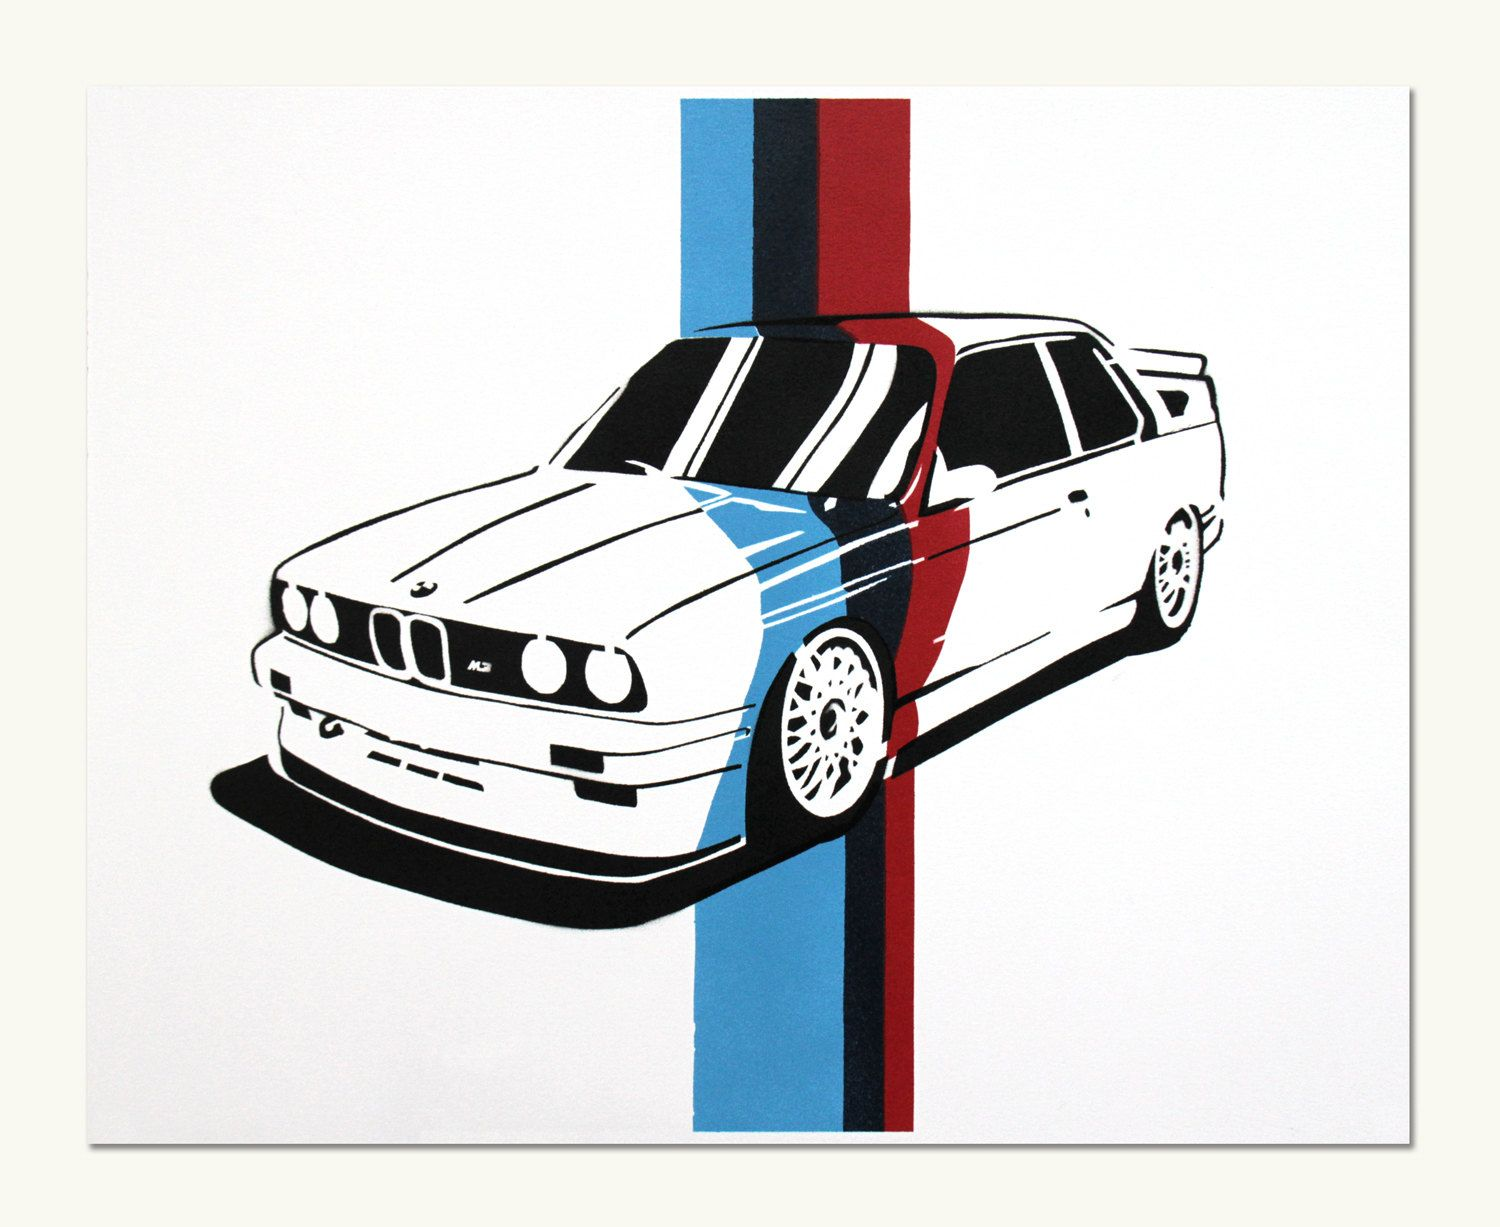 Items similar to Classic Car Print – BMW E30 M3 (M Colors) on Etsy